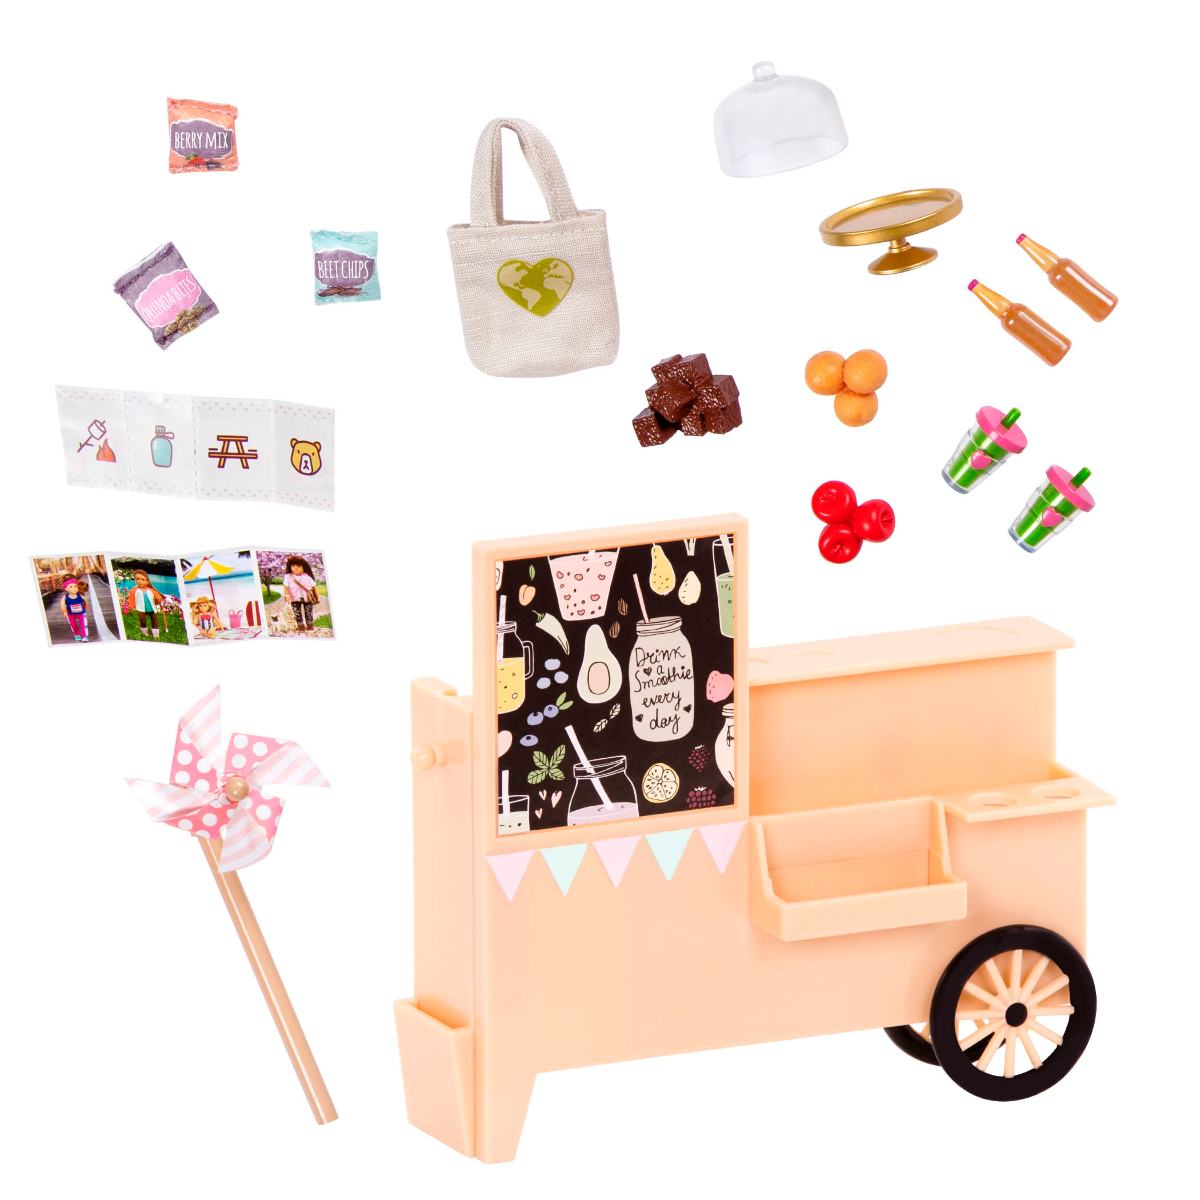 Take Away Treat Cart |6-inch Mini Doll Accessory Set |Lori Dolls